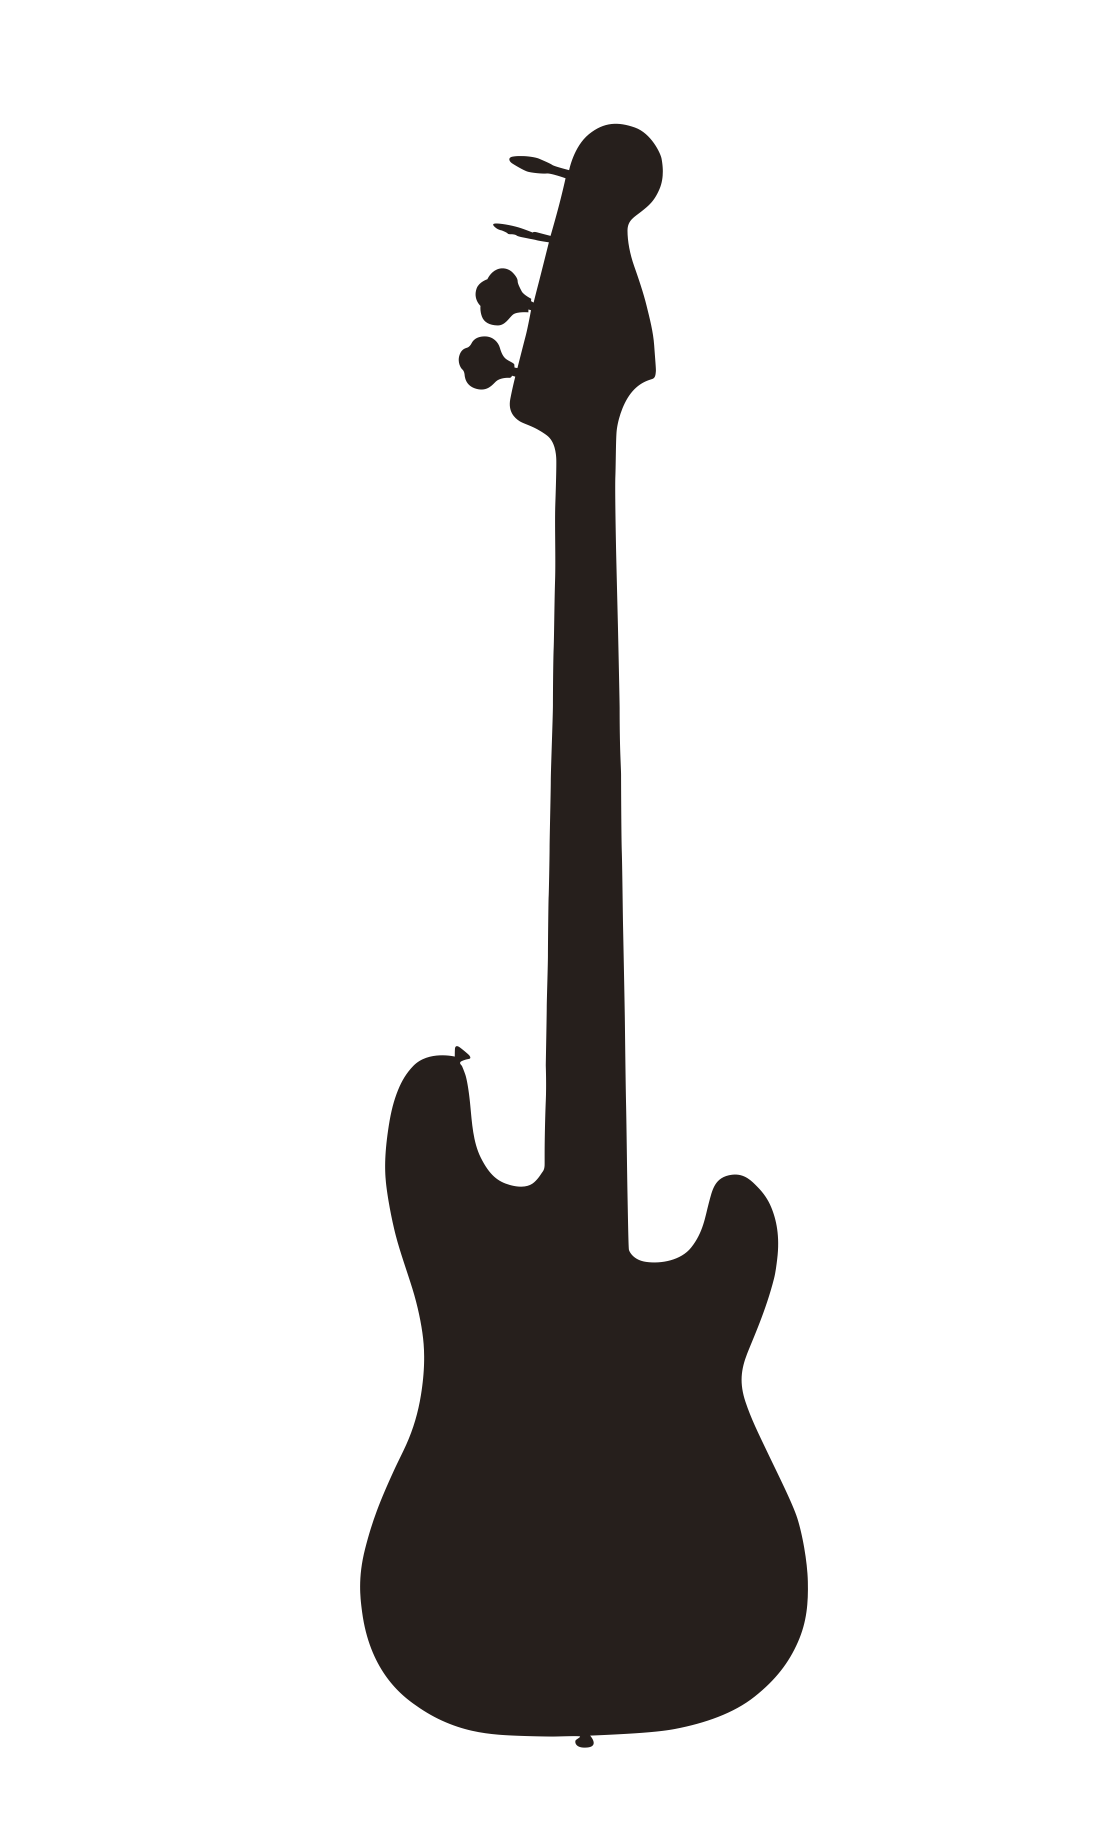 Afro clipart outline. Guitar black and white